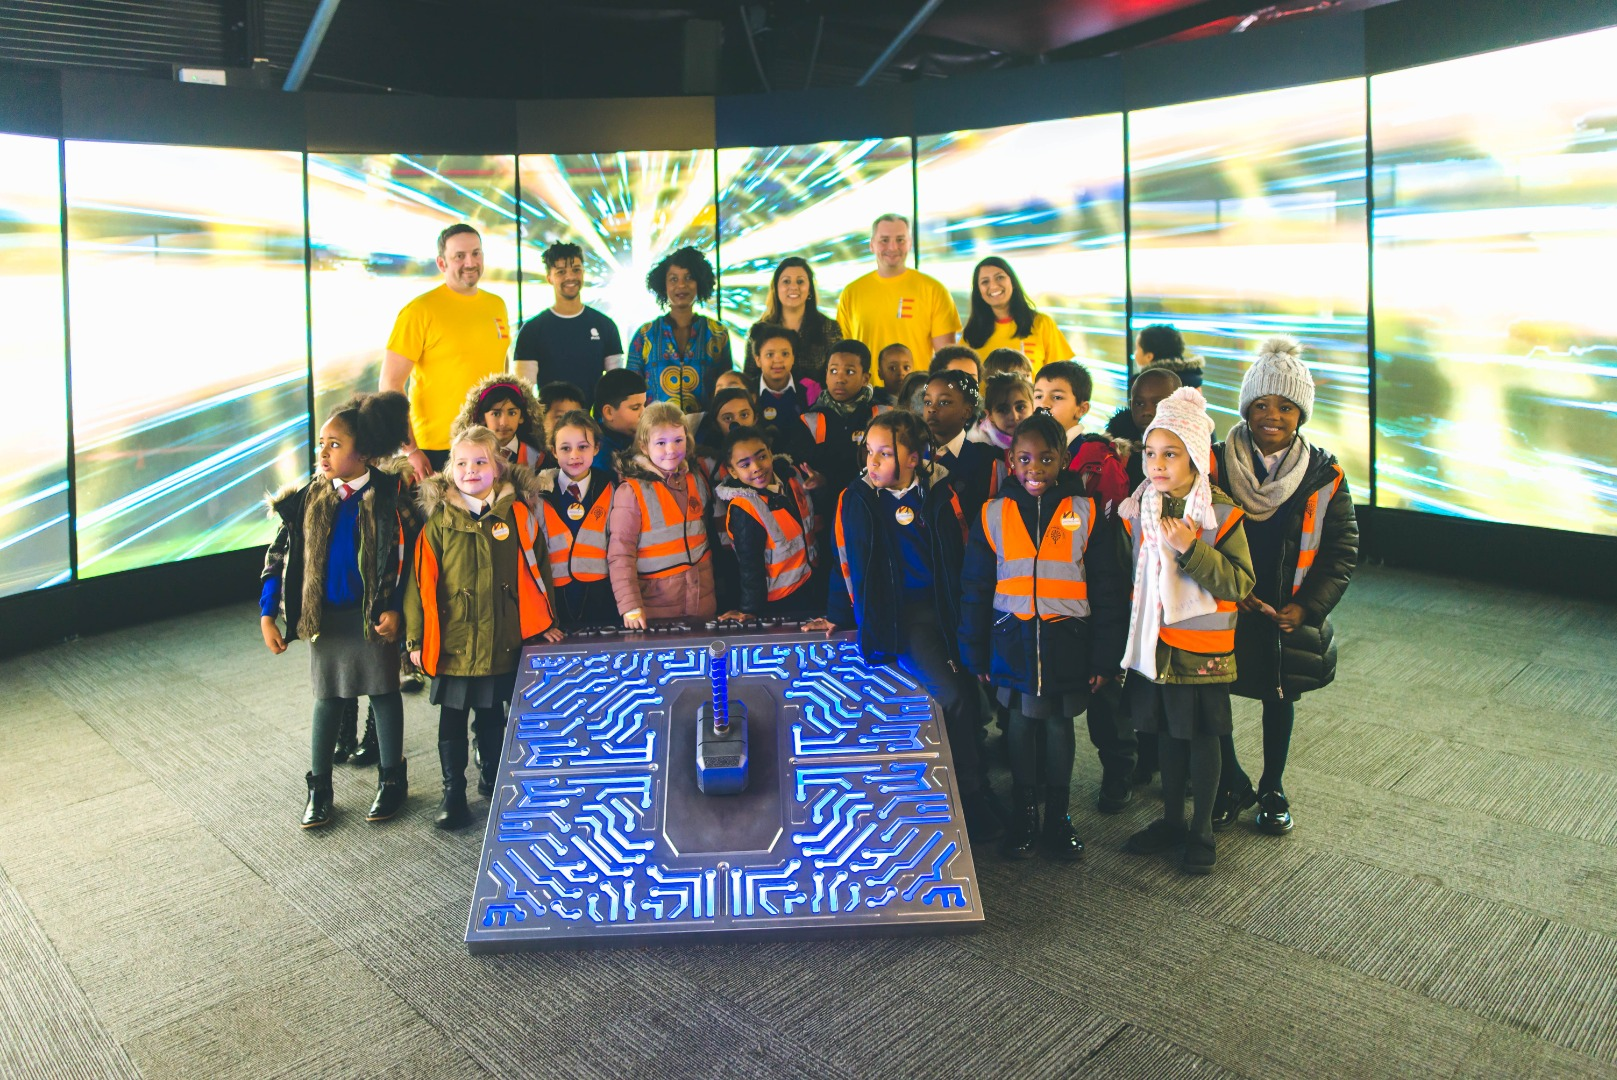 Youngsters inspired by UCLan's 'Engineering Avengers'